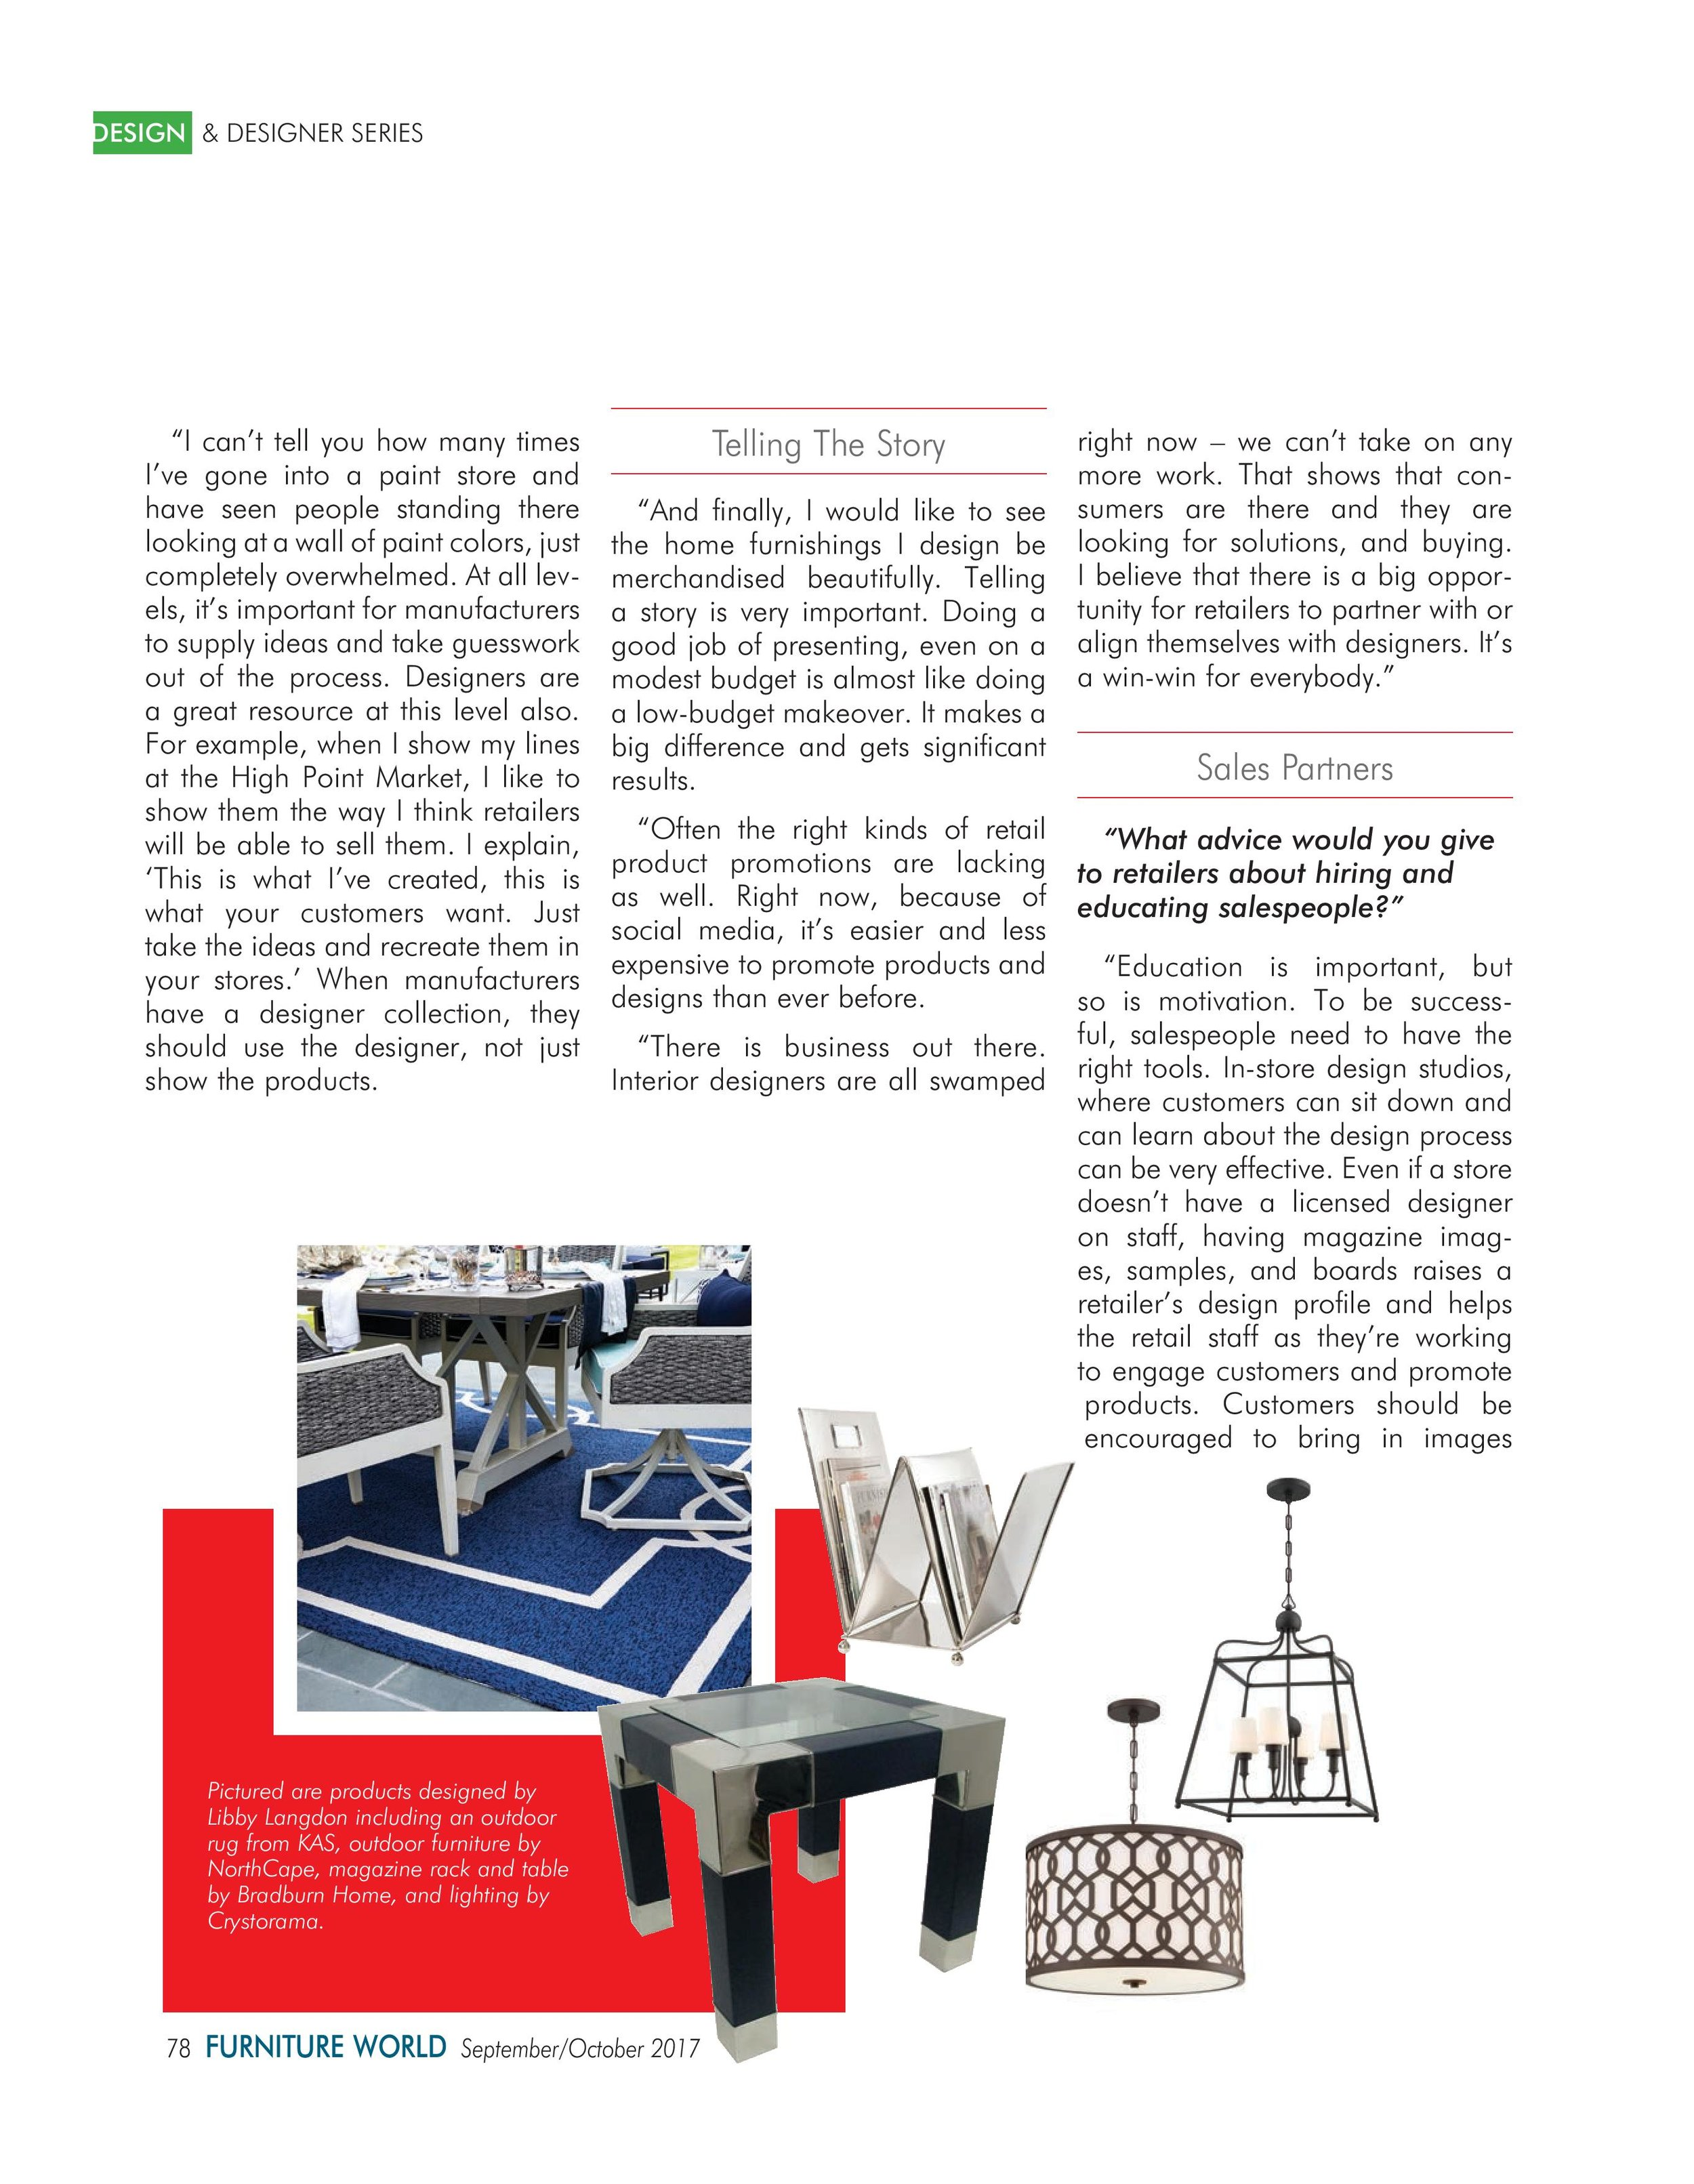 Furniture World Feature October 2017-page-006.jpg